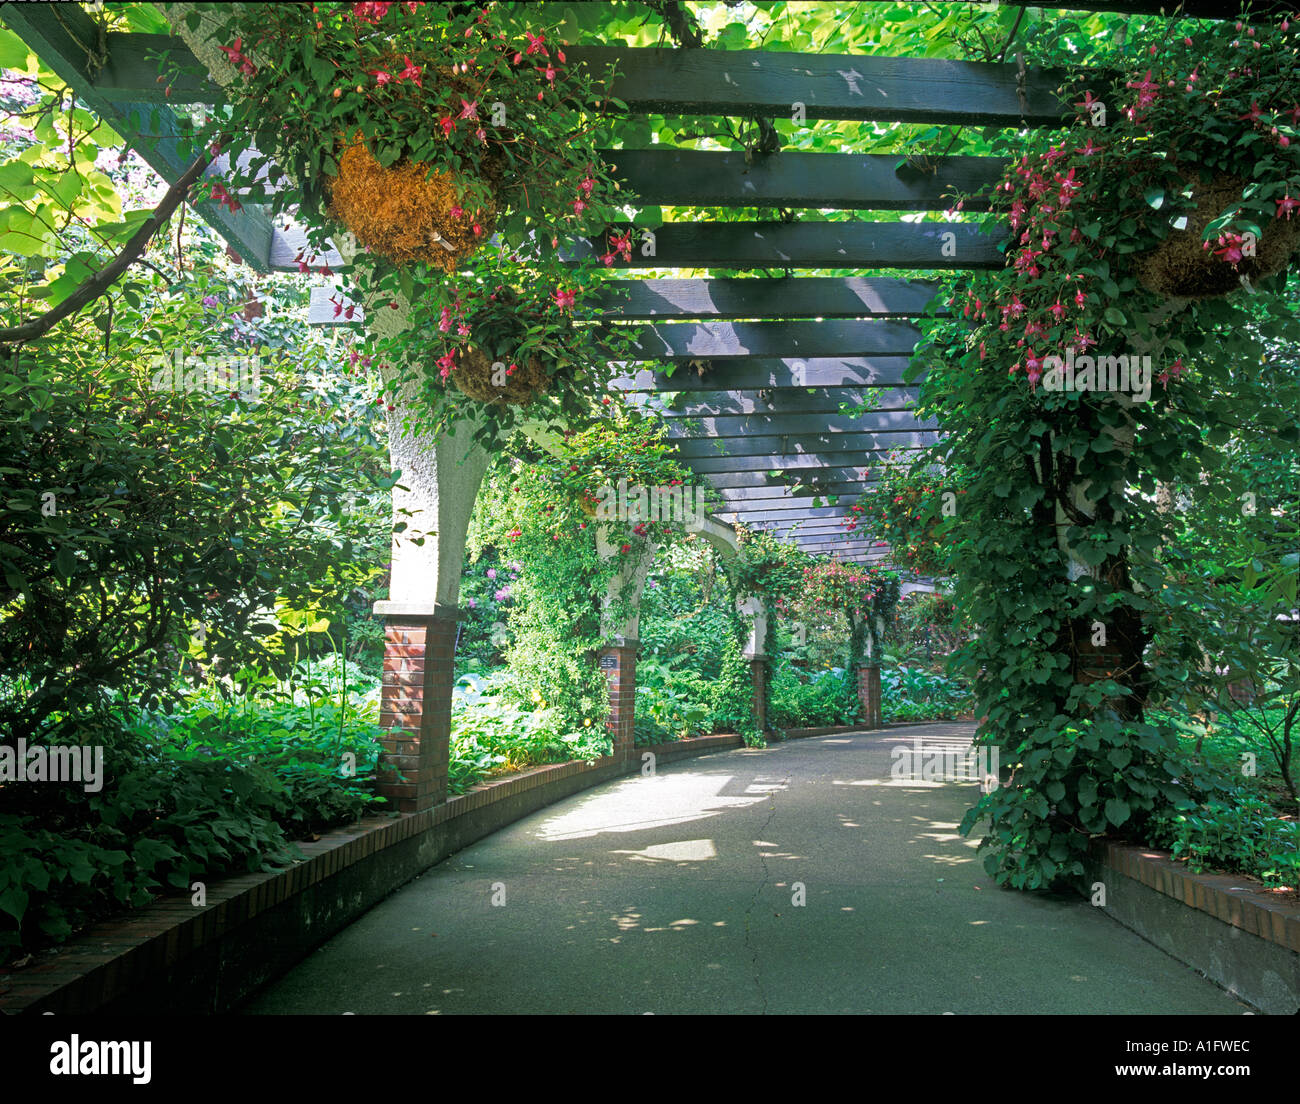 Fuschia lined walkway Park and Tilford Garden Vancouver BC - Stock Image